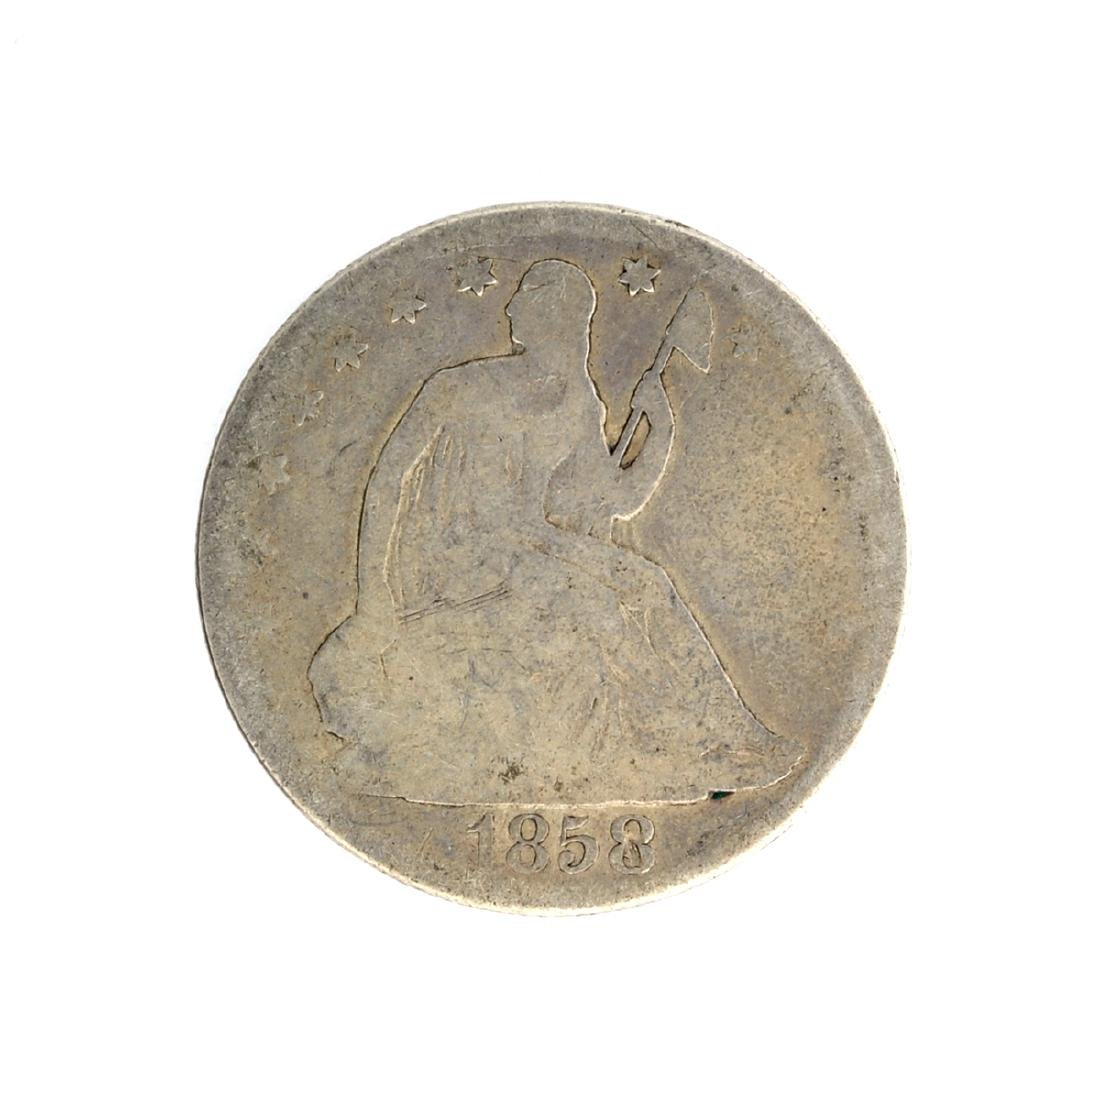 1858-O Liberty Seated Half Dollar Coin